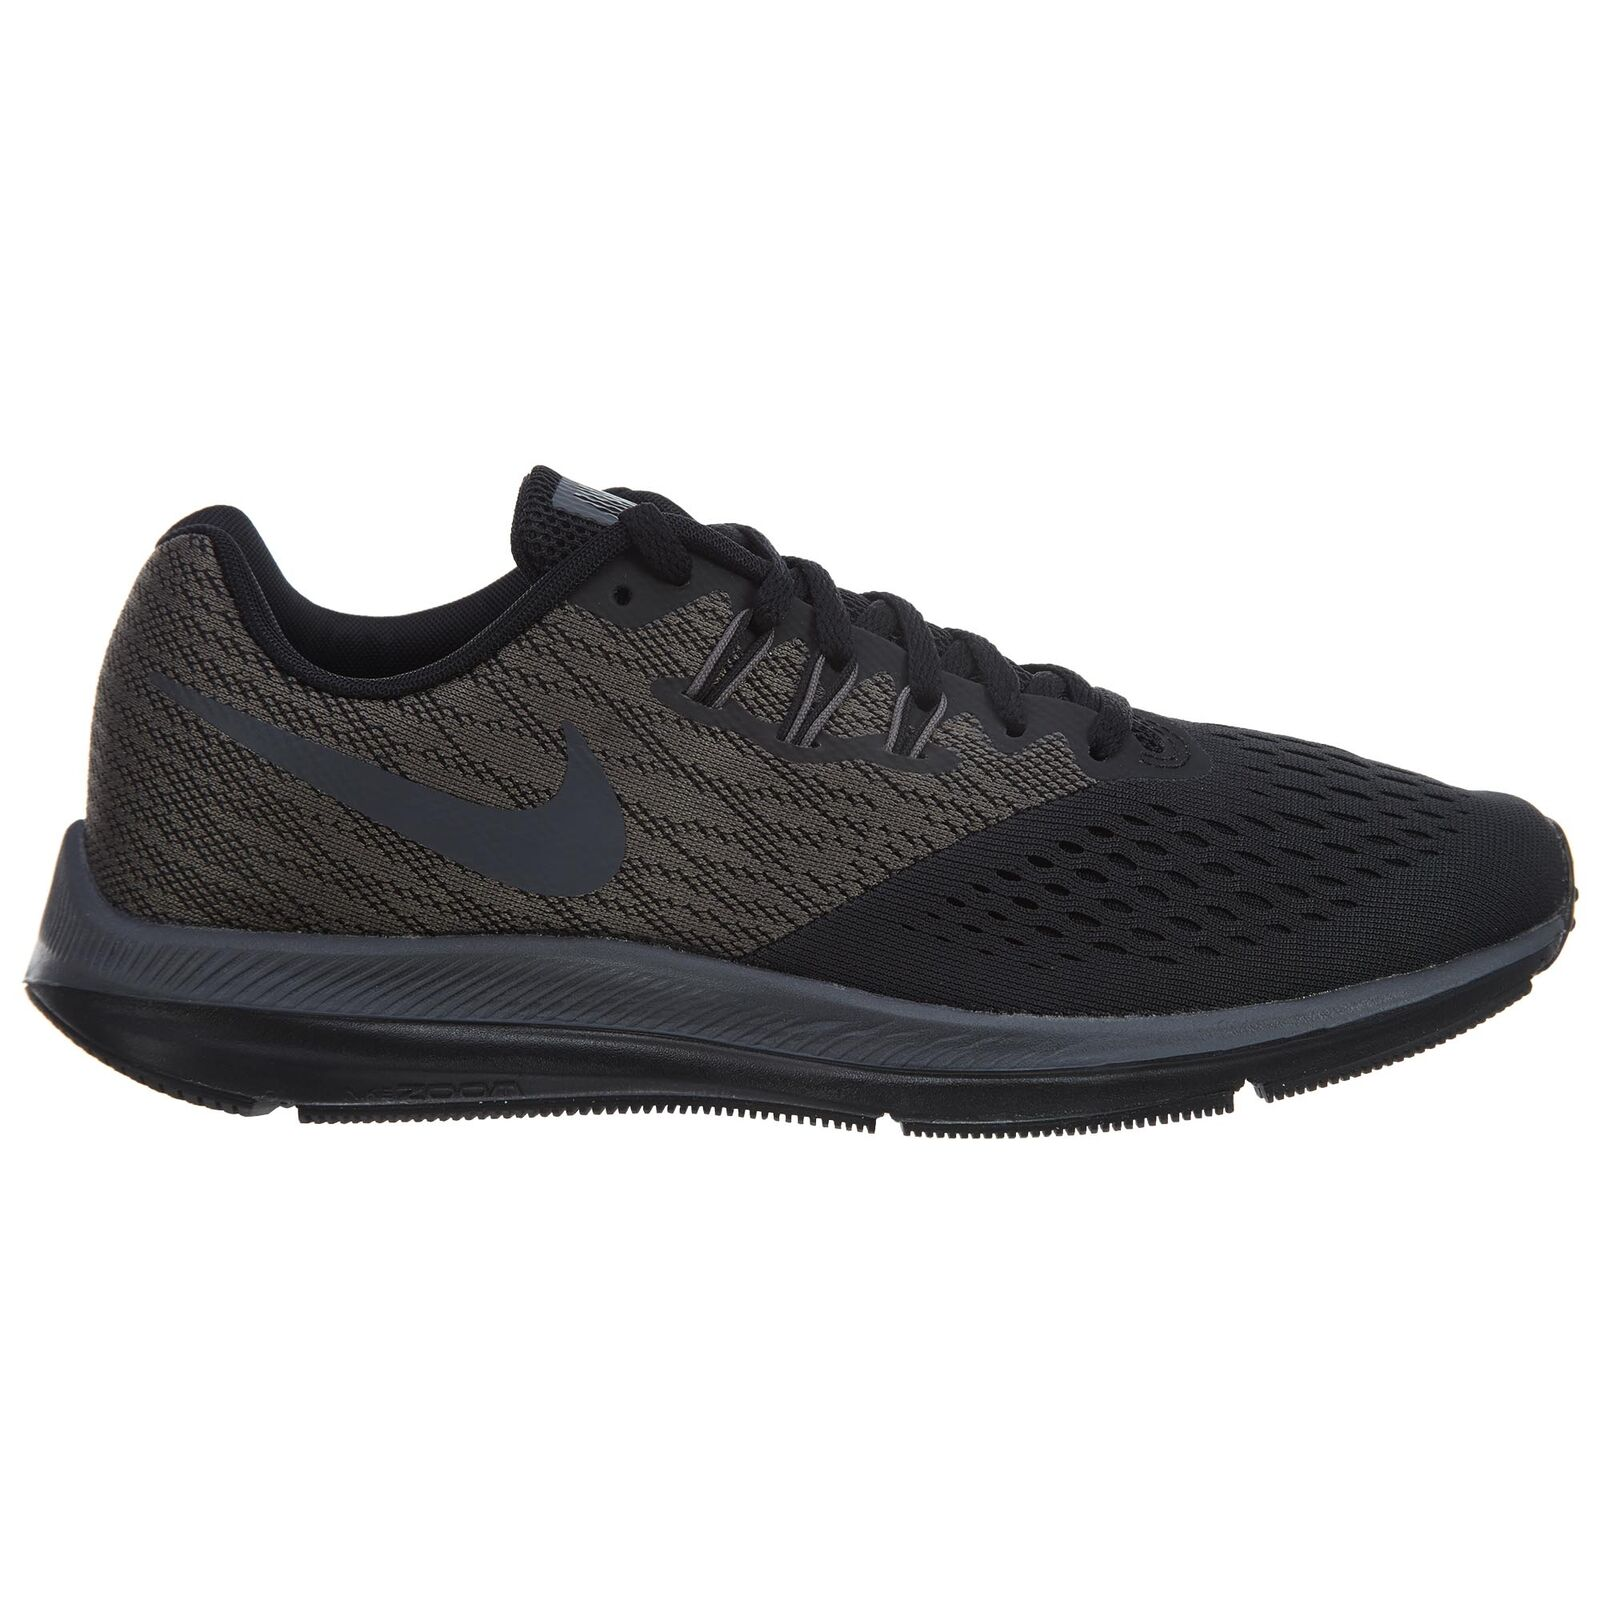 Nike Zoom Winflo 4 Mens 898466-007 Anthracite Grey Black Running shoes Size 8.5